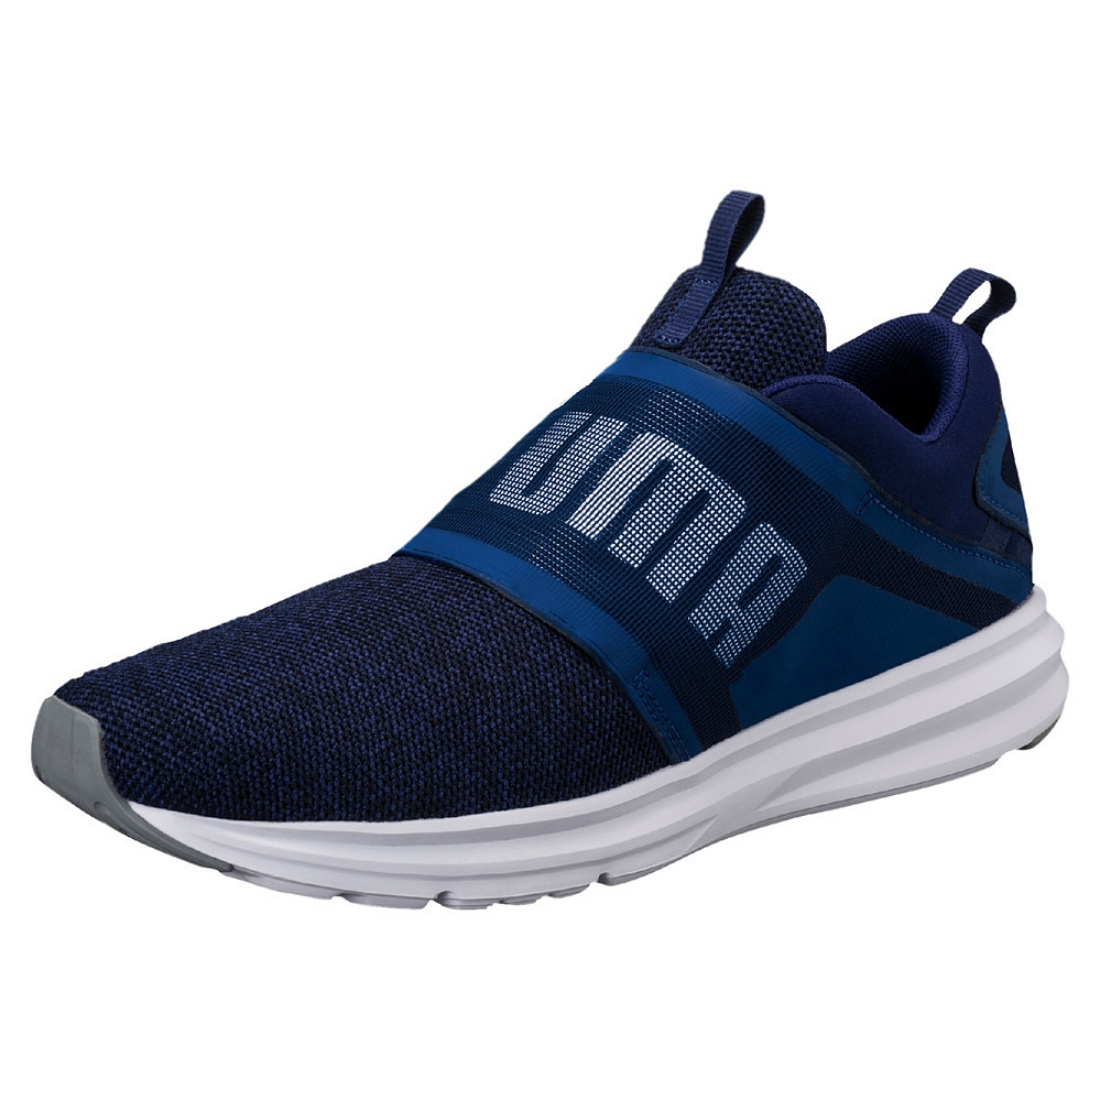 c777a8708acf Enzo strap knit PUMA running shoes vintage shoes 190029 blue depths special  price